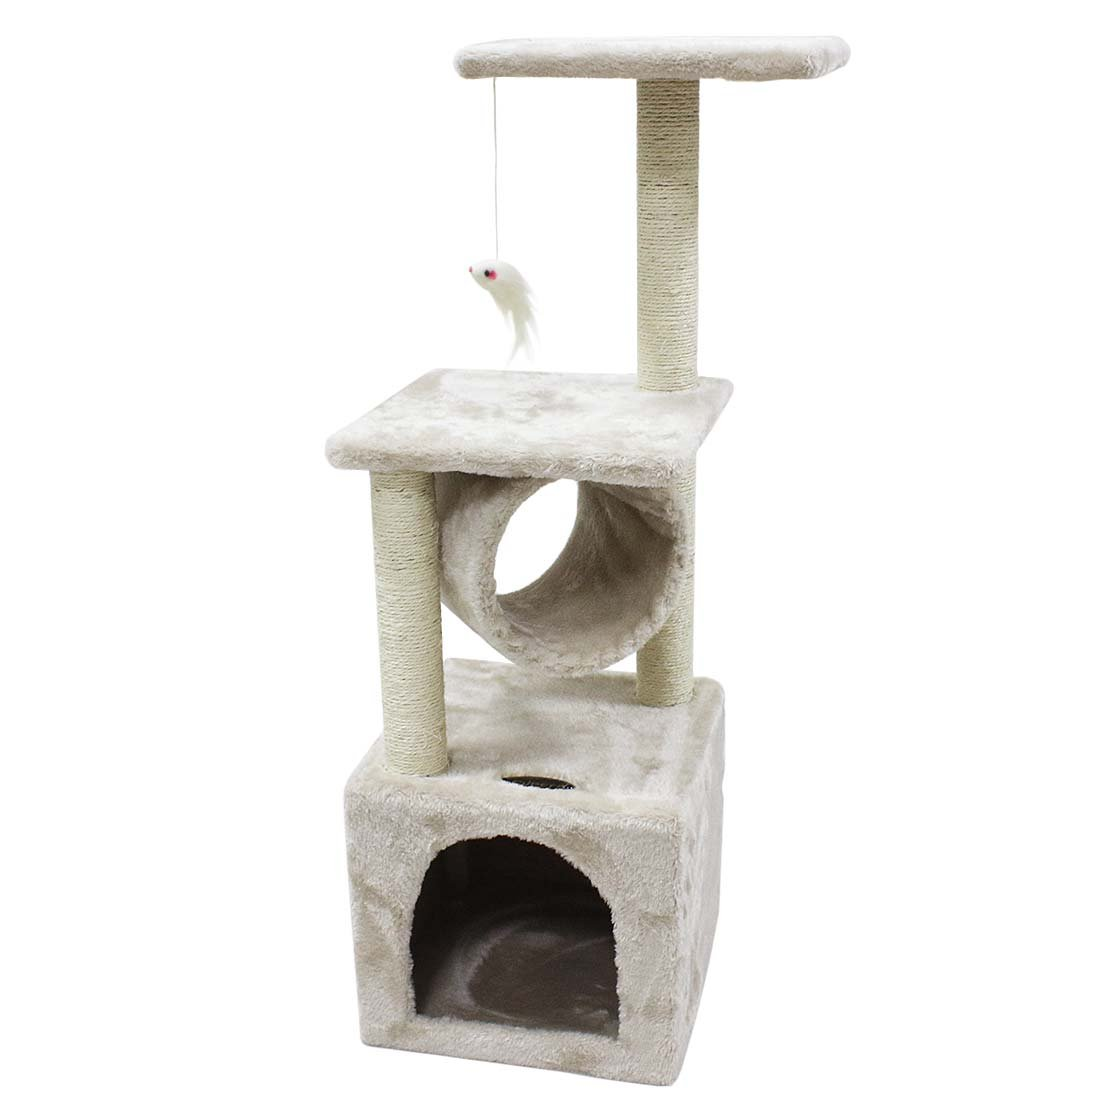 CUPETS Cat Tree Beige Flannelette Cat Climber Play House Condo Furniture with Scratching Post, Activity Tree Pet Products for Cats 36 Inches High by CUPETS